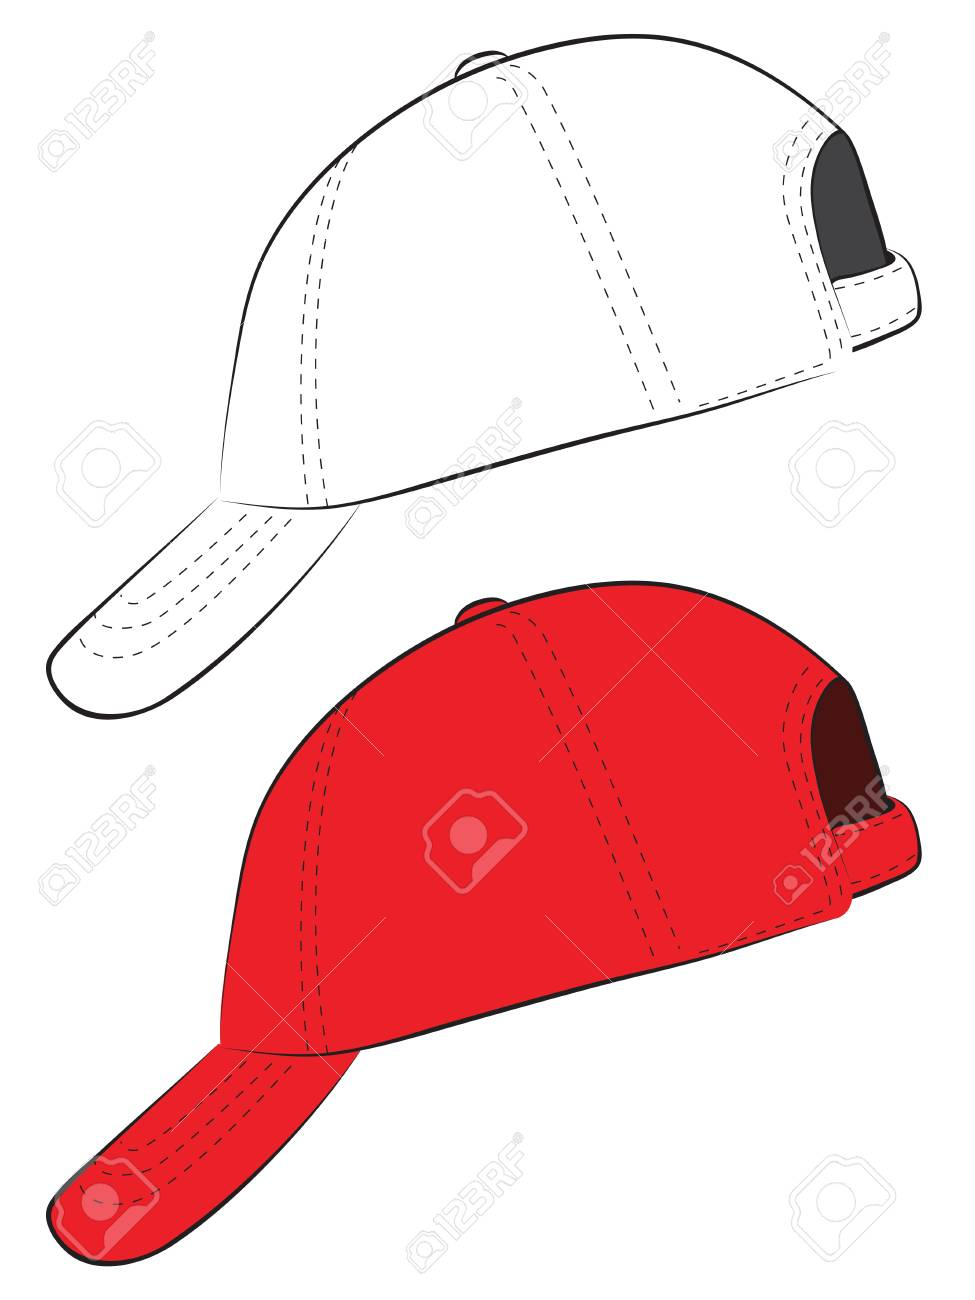 Simple Baseball Cap Design In Red And Line Art de5a8a8be2c